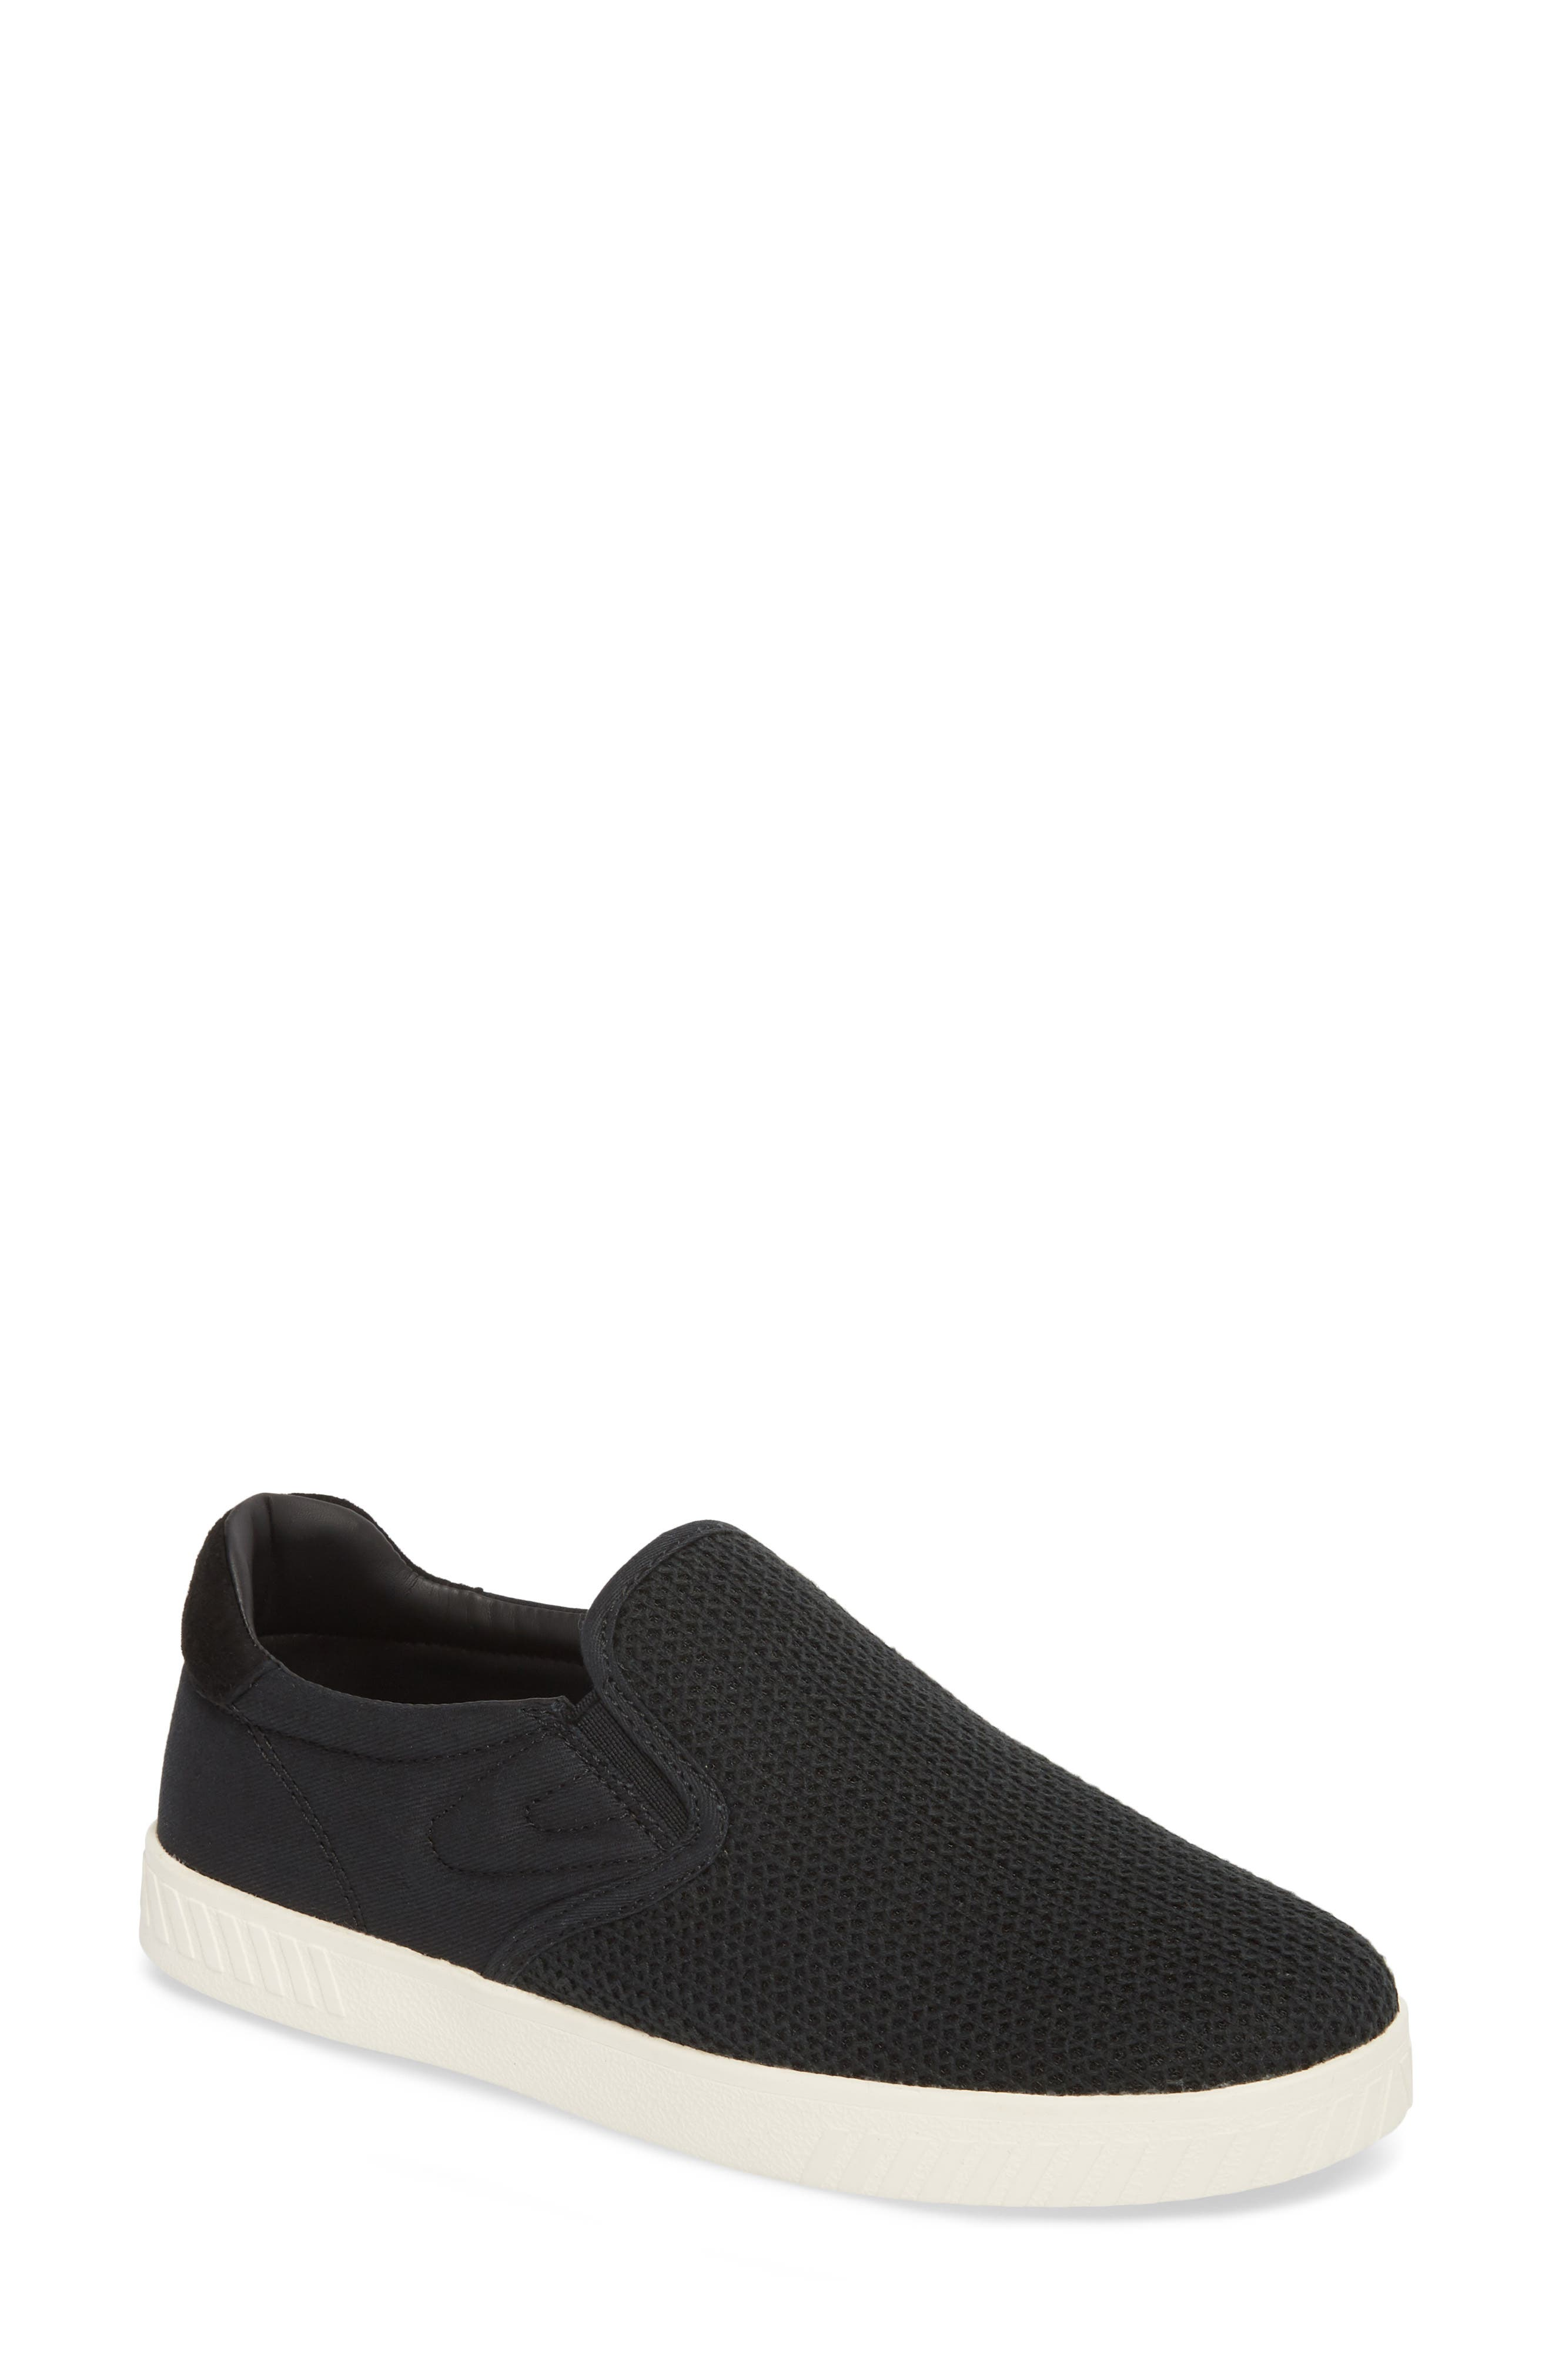 Cruz Mesh Slip-On Sneaker,                             Main thumbnail 1, color,